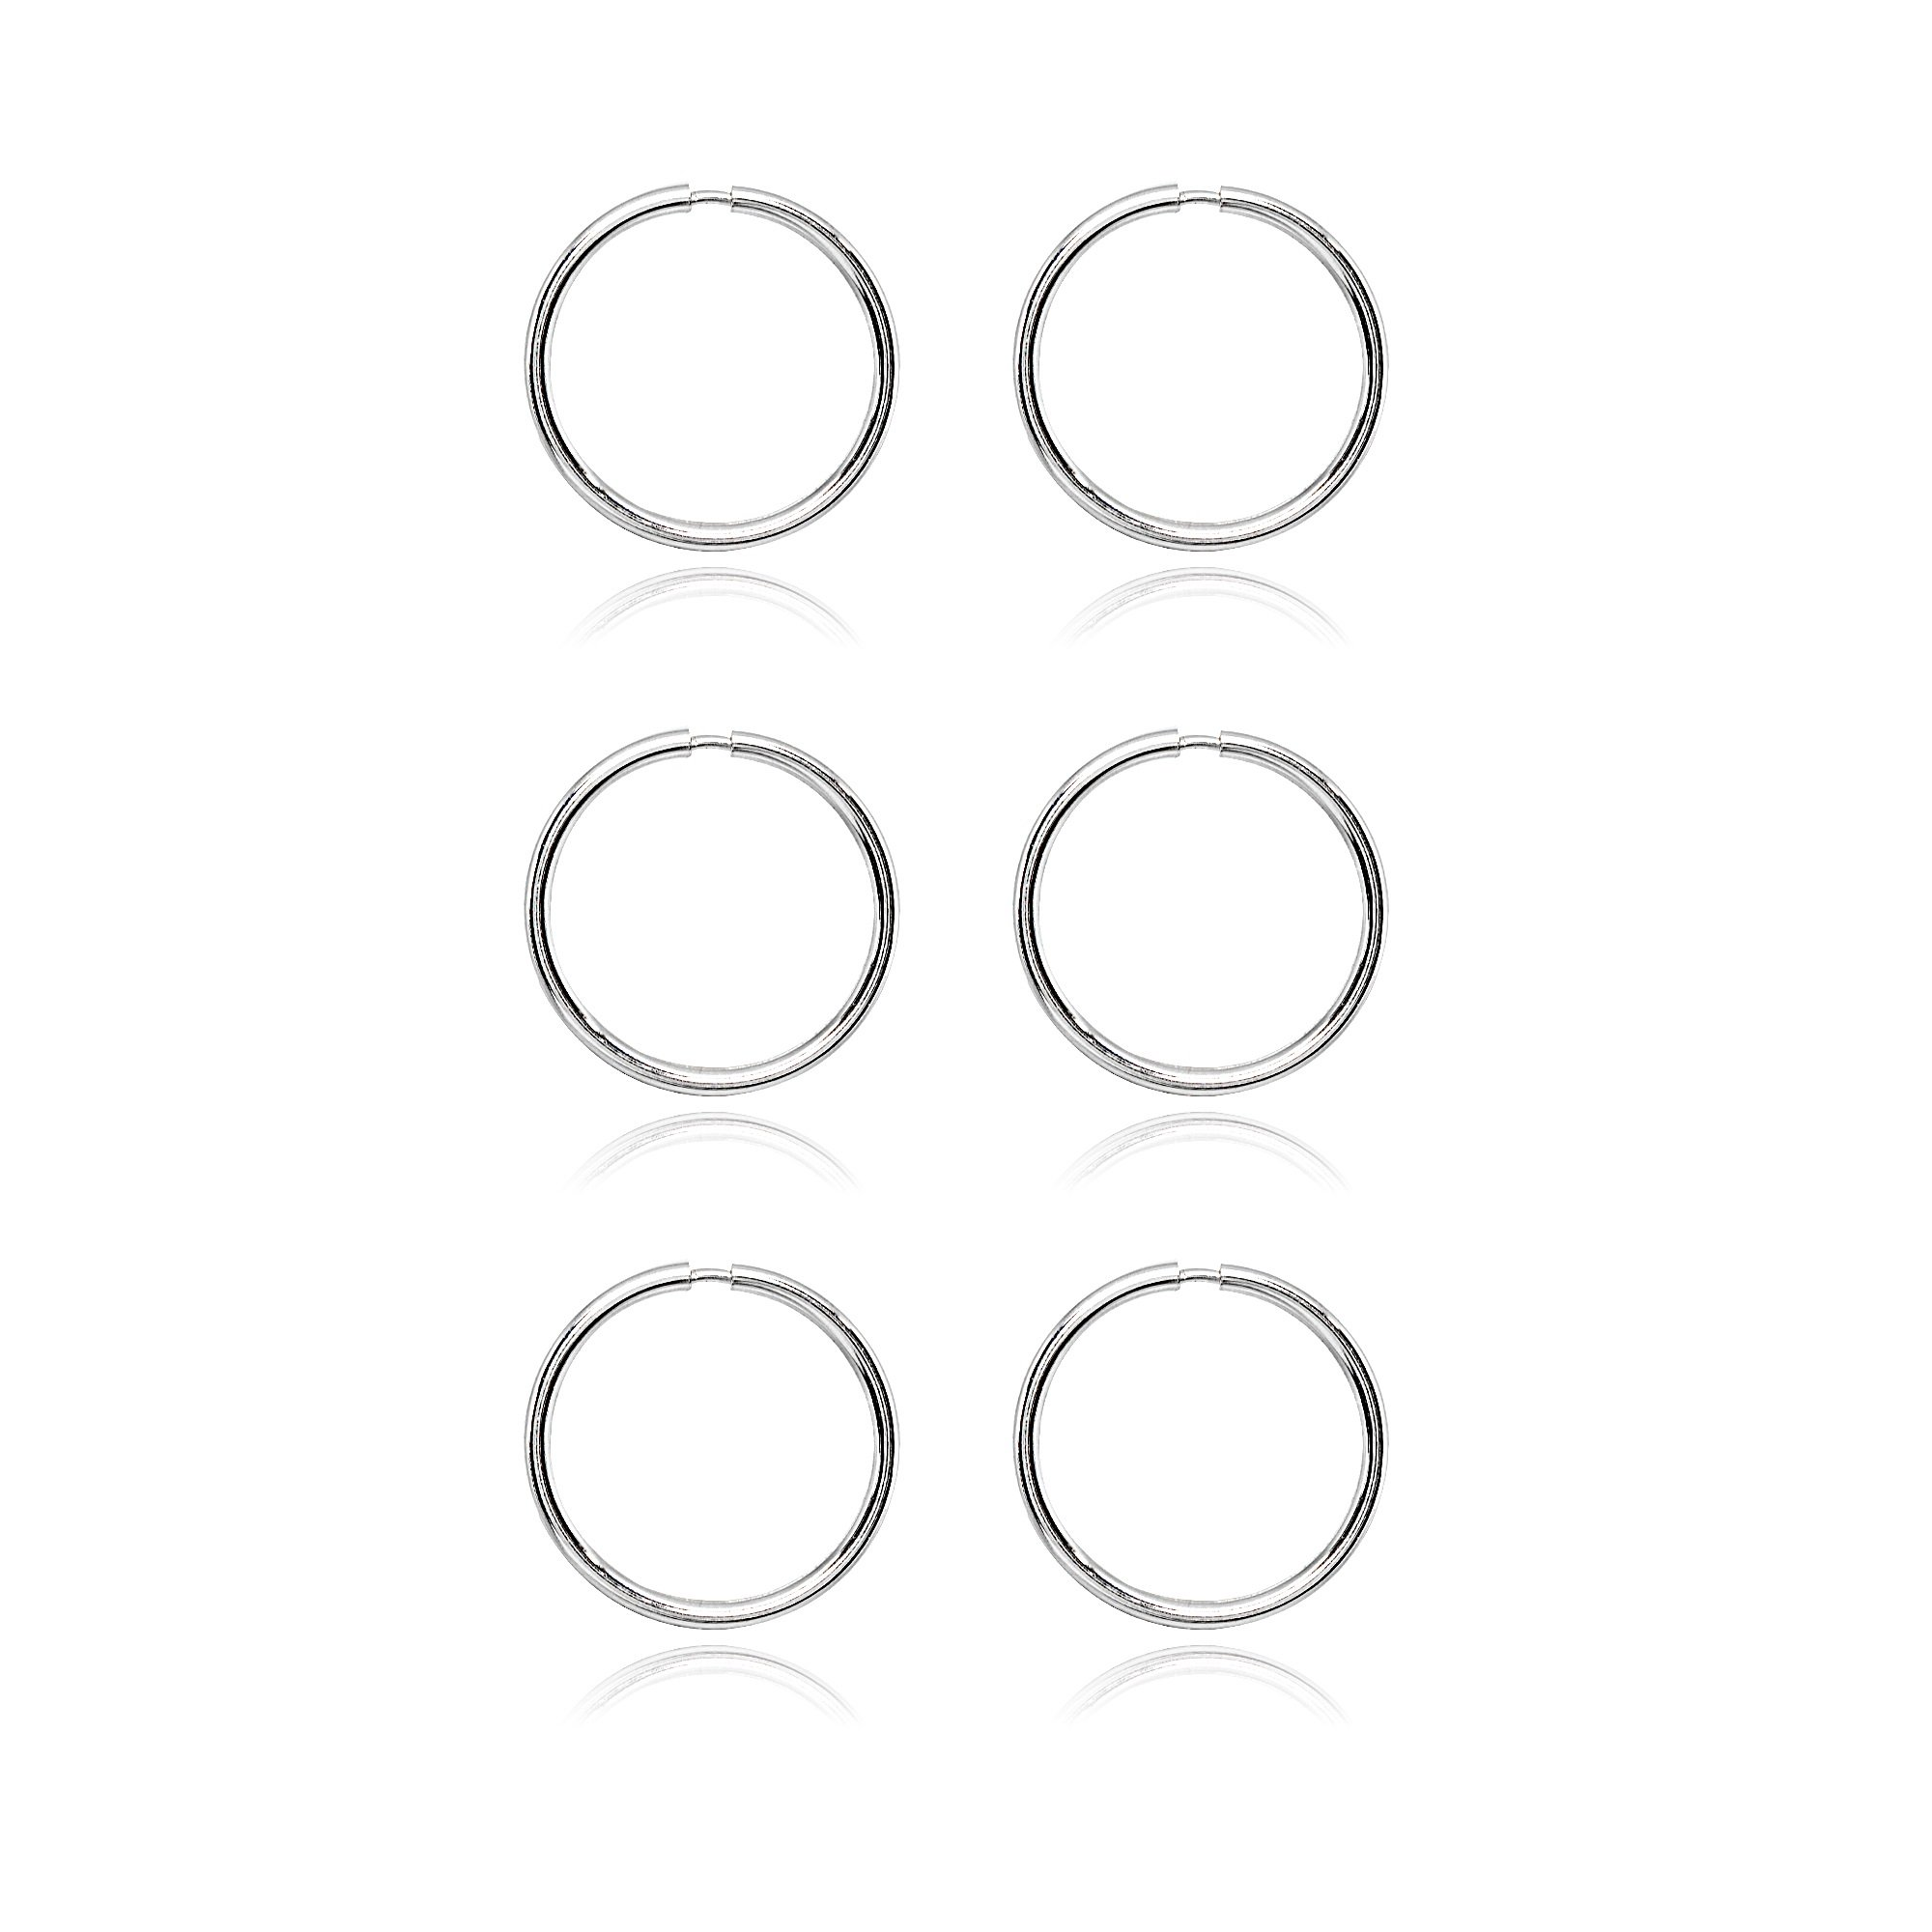 14K White Gold Tiny Small Endless 10mm Thin Round Lightweight Unisex Hoop Earrings, Set of 3 Pairs by Hoops 4 Less (Image #3)